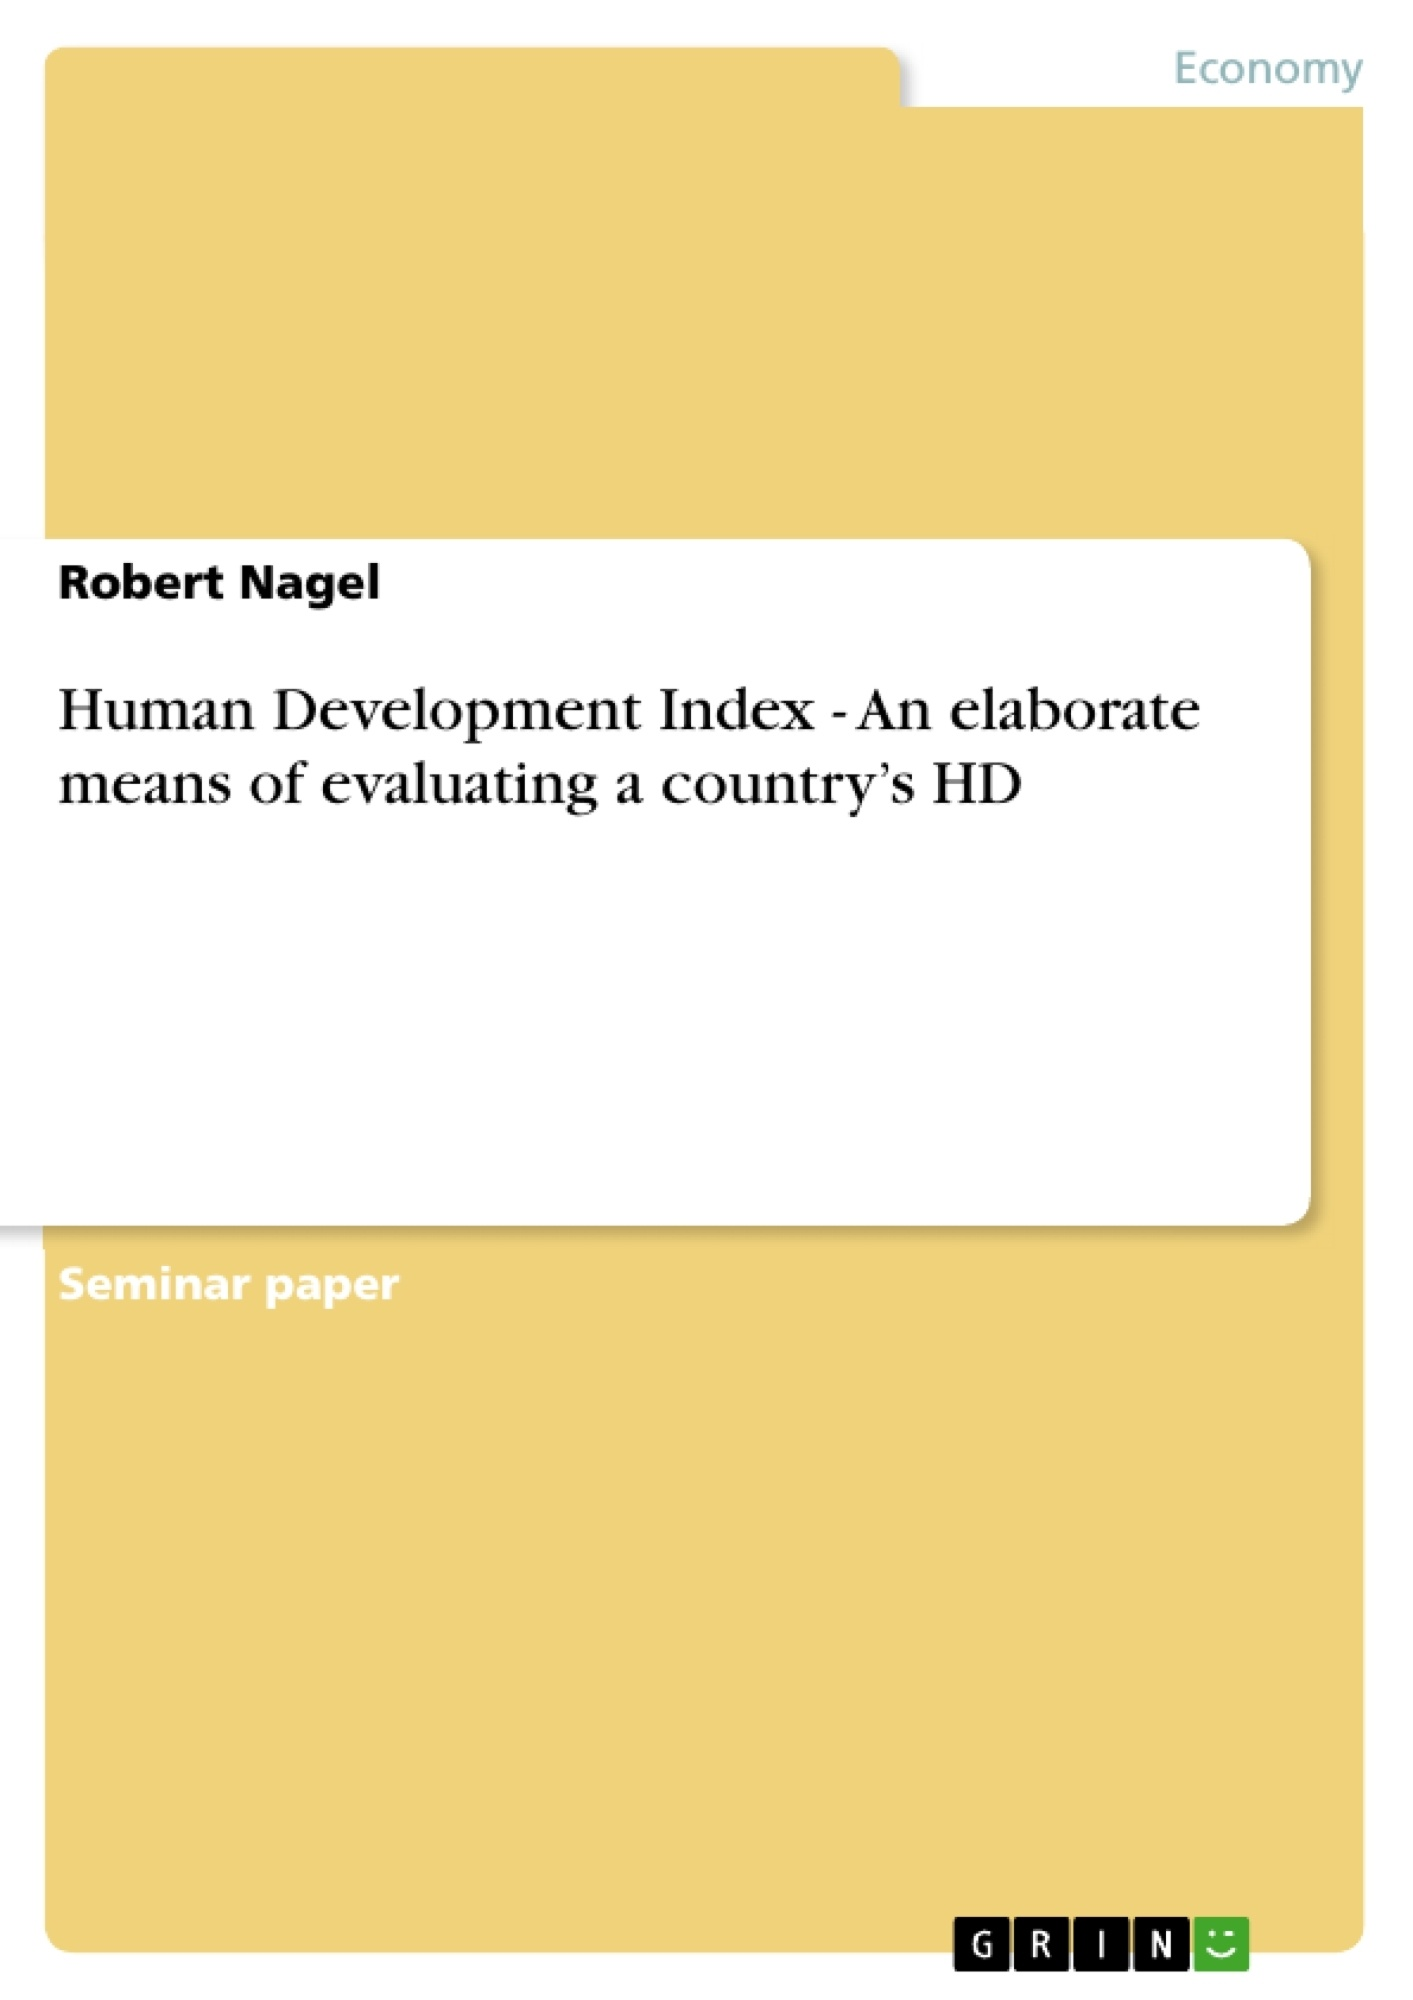 Title: Human Development Index - An elaborate means of evaluating a country's HD